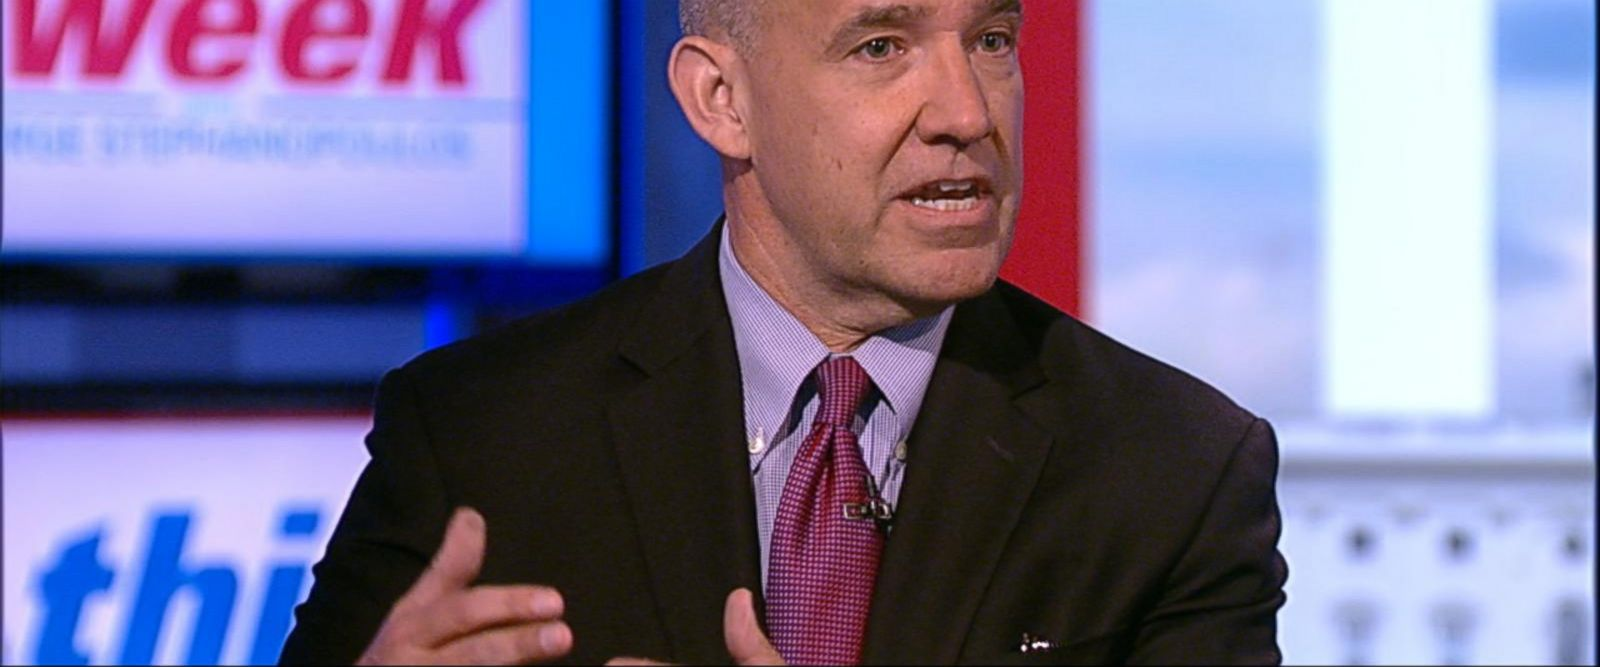 VIDEO: 'Power structure' must change to stop sexual harassment, Matthew Dowd says